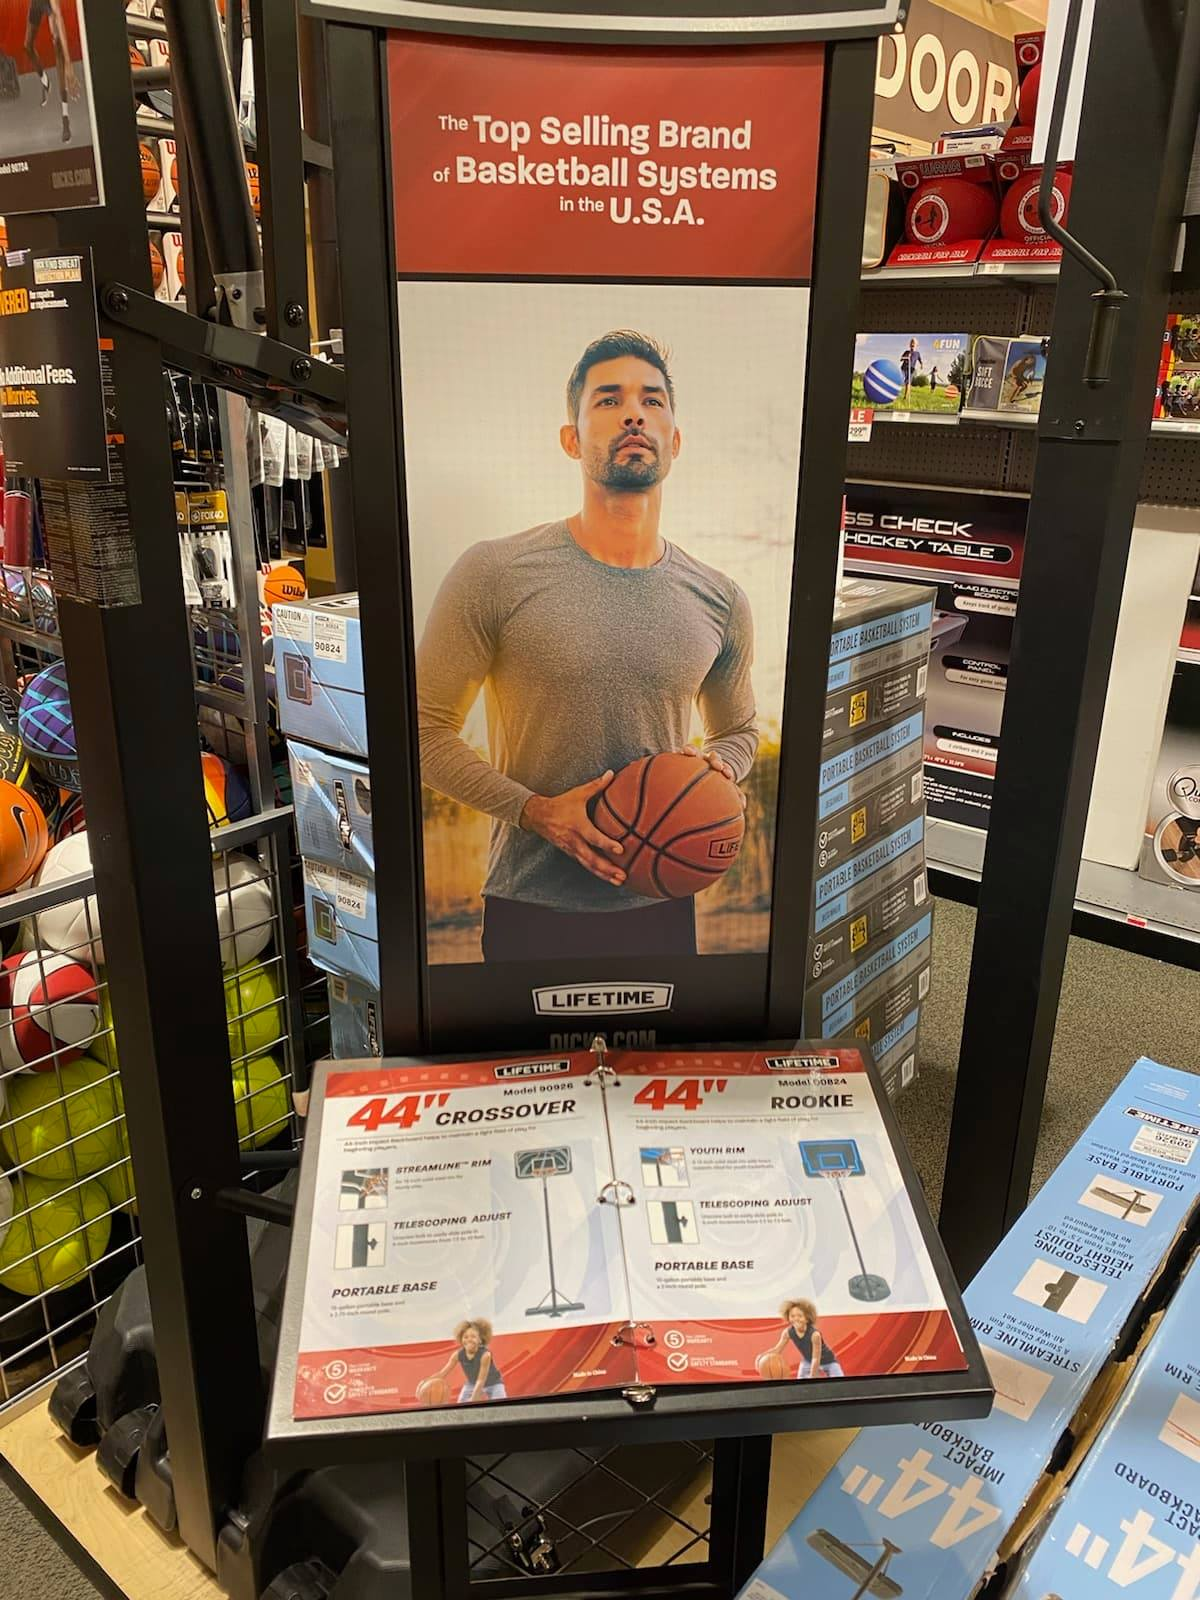 Basketball For Lifetime in Dick's Sporting Goods